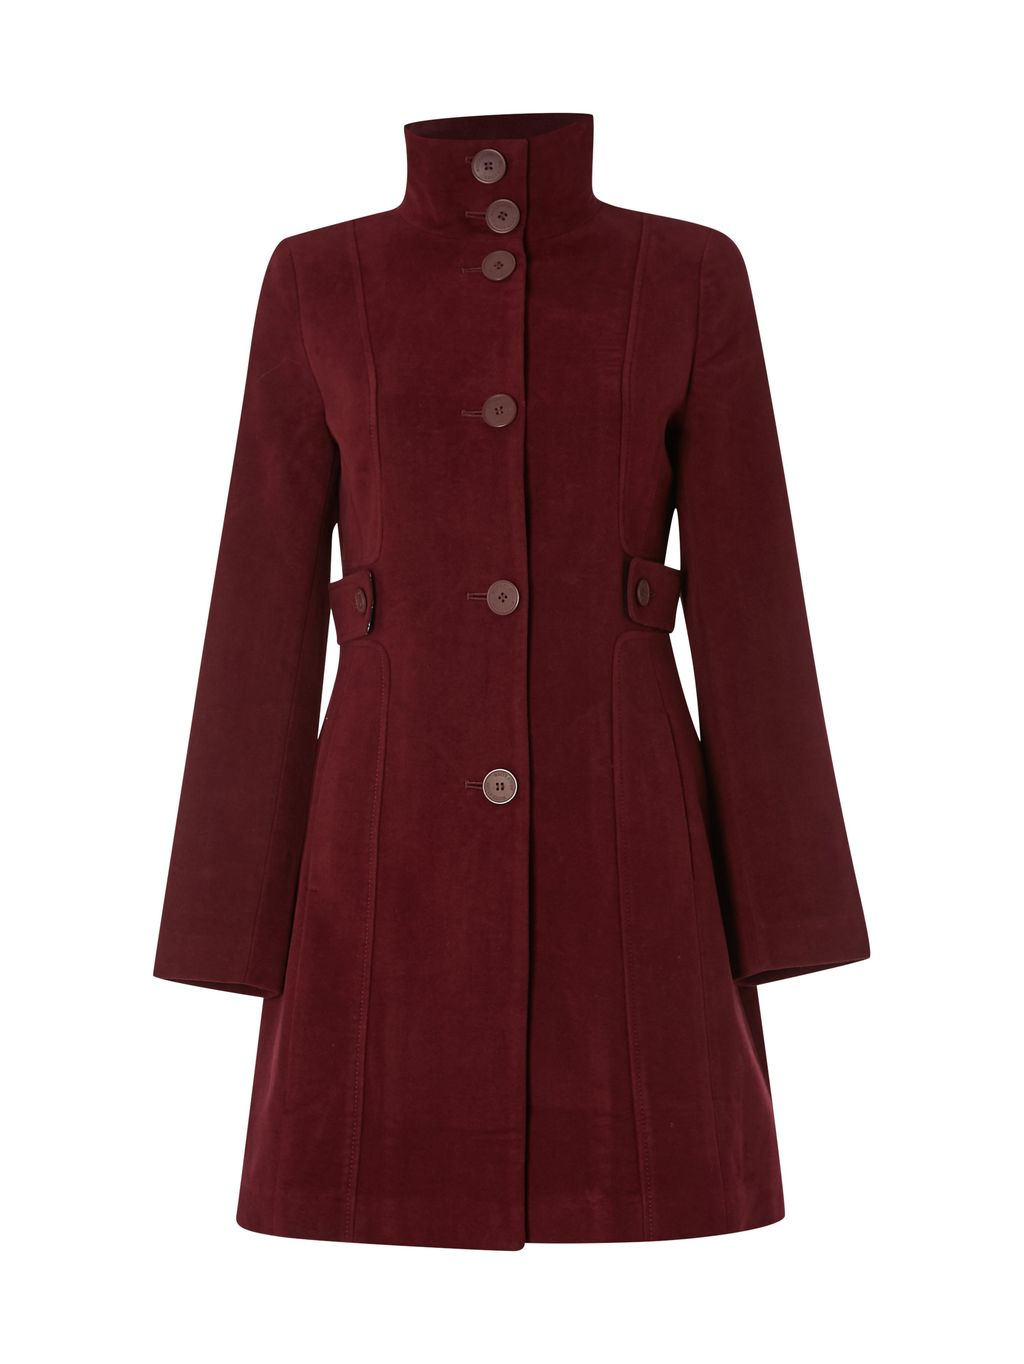 Market Place Velvet Coat, Burgundy - pattern: plain; collar: funnel; style: single breasted; length: mid thigh; predominant colour: burgundy; occasions: casual; fit: tailored/fitted; fibres: fur - 100%; sleeve length: long sleeve; sleeve style: standard; collar break: high; pattern type: fabric; texture group: velvet/fabrics with pile; season: a/w 2016; wardrobe: highlight